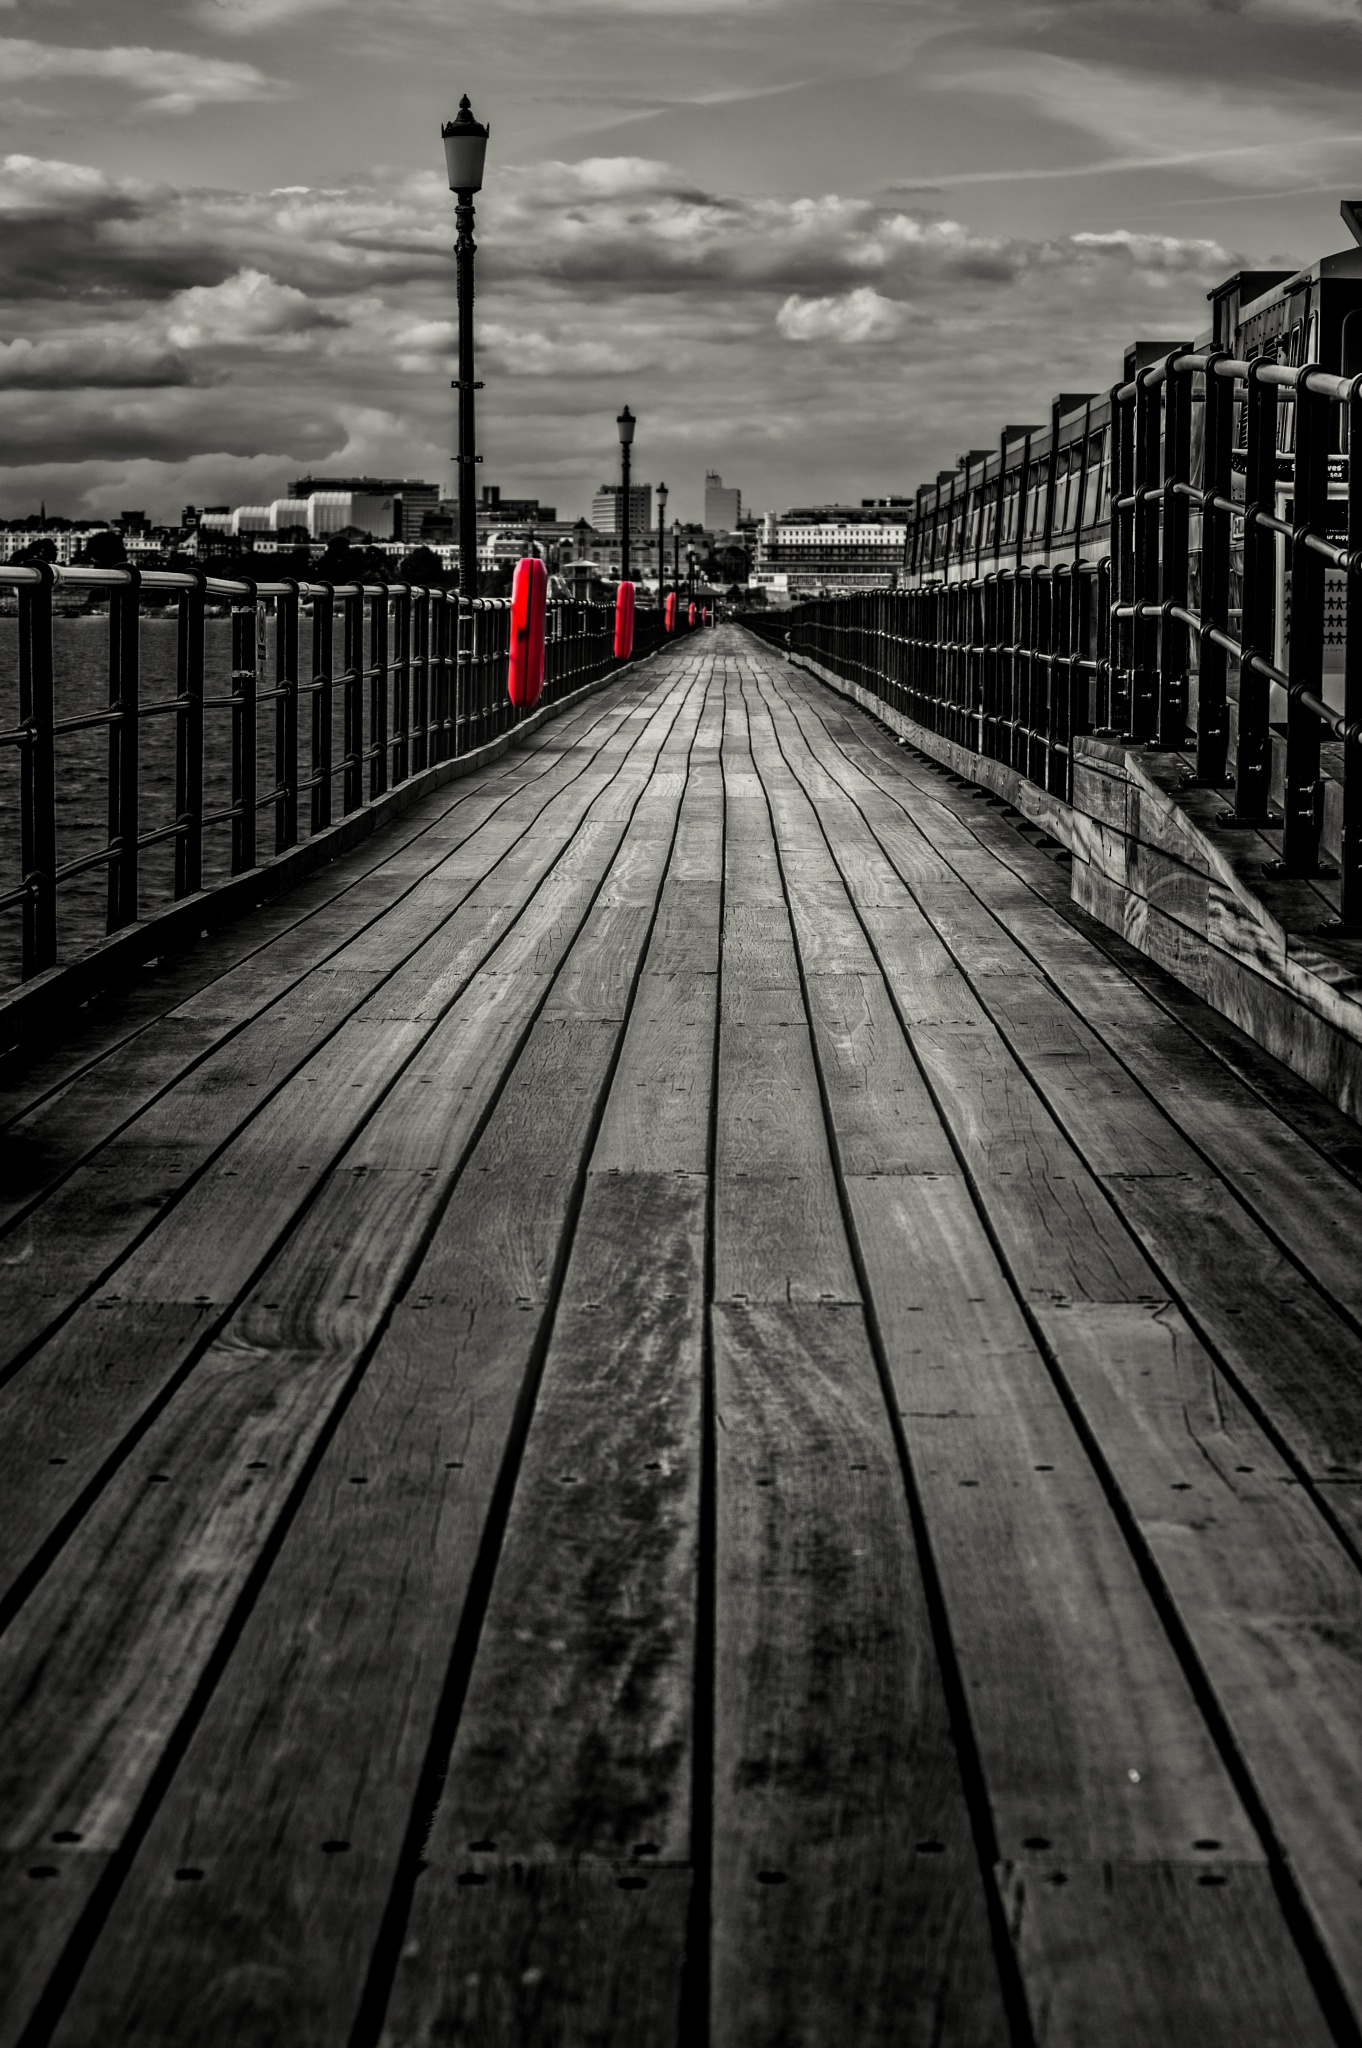 Southend Pier - Reprise by stephen.harding.735